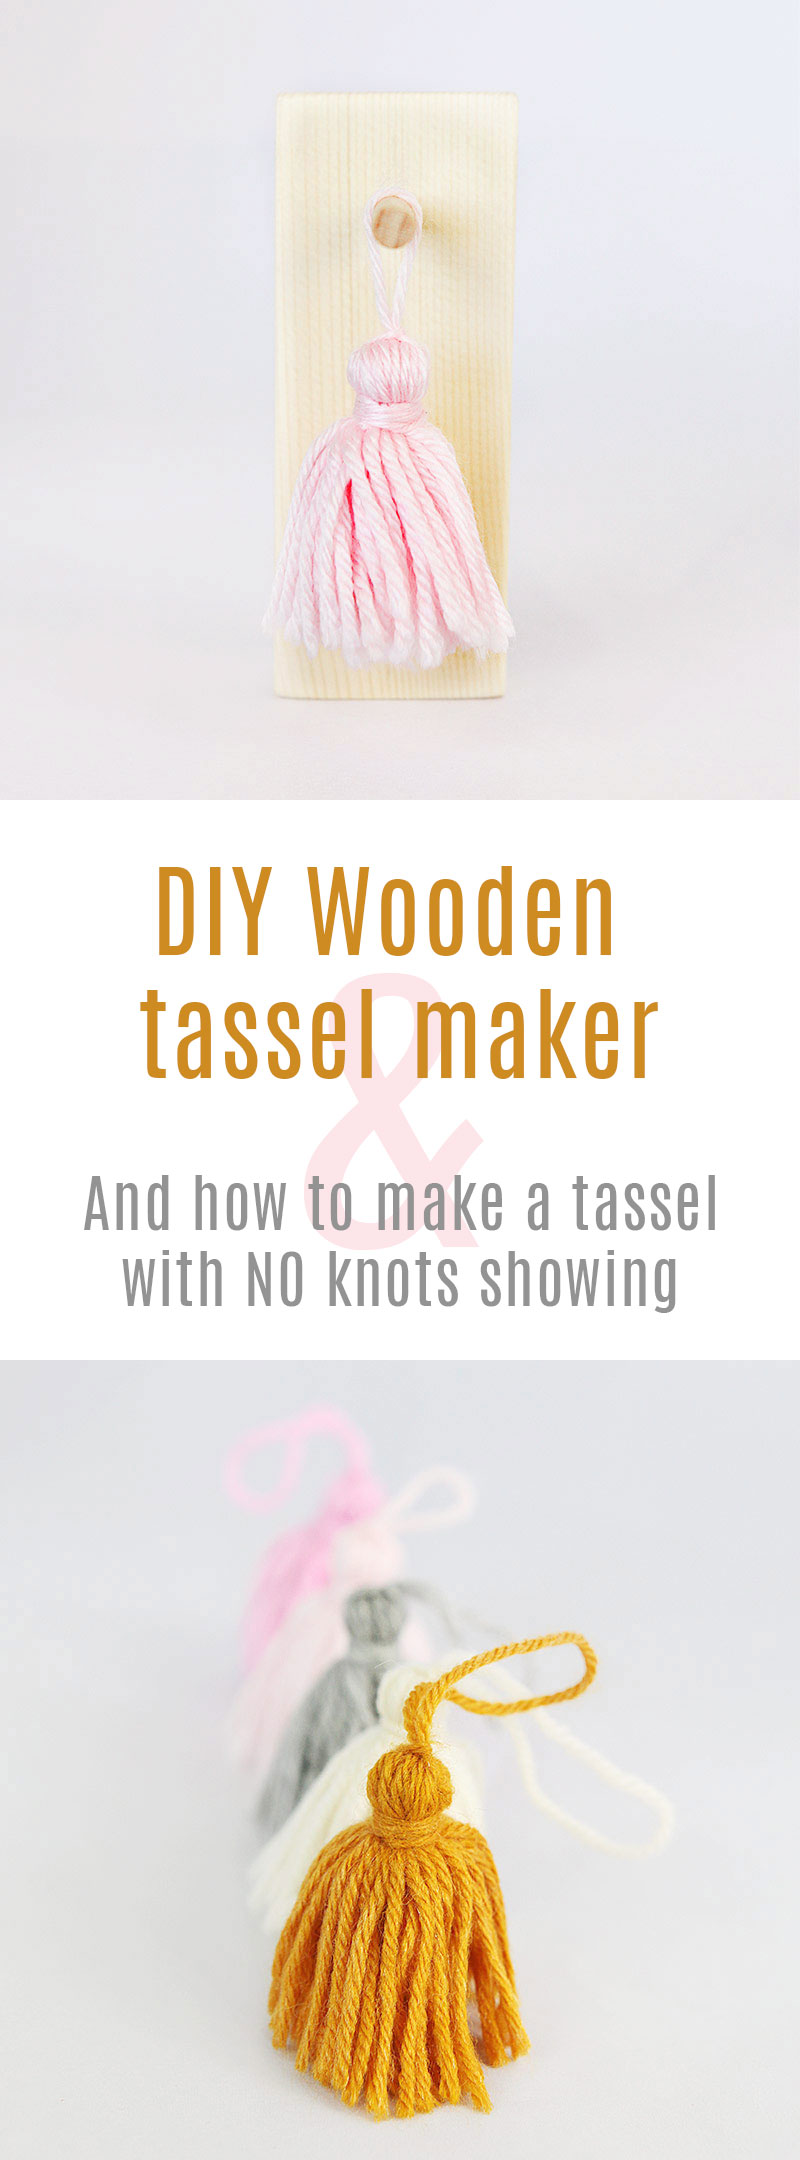 Wooden tassel maker and make a tassel without visible knot pin